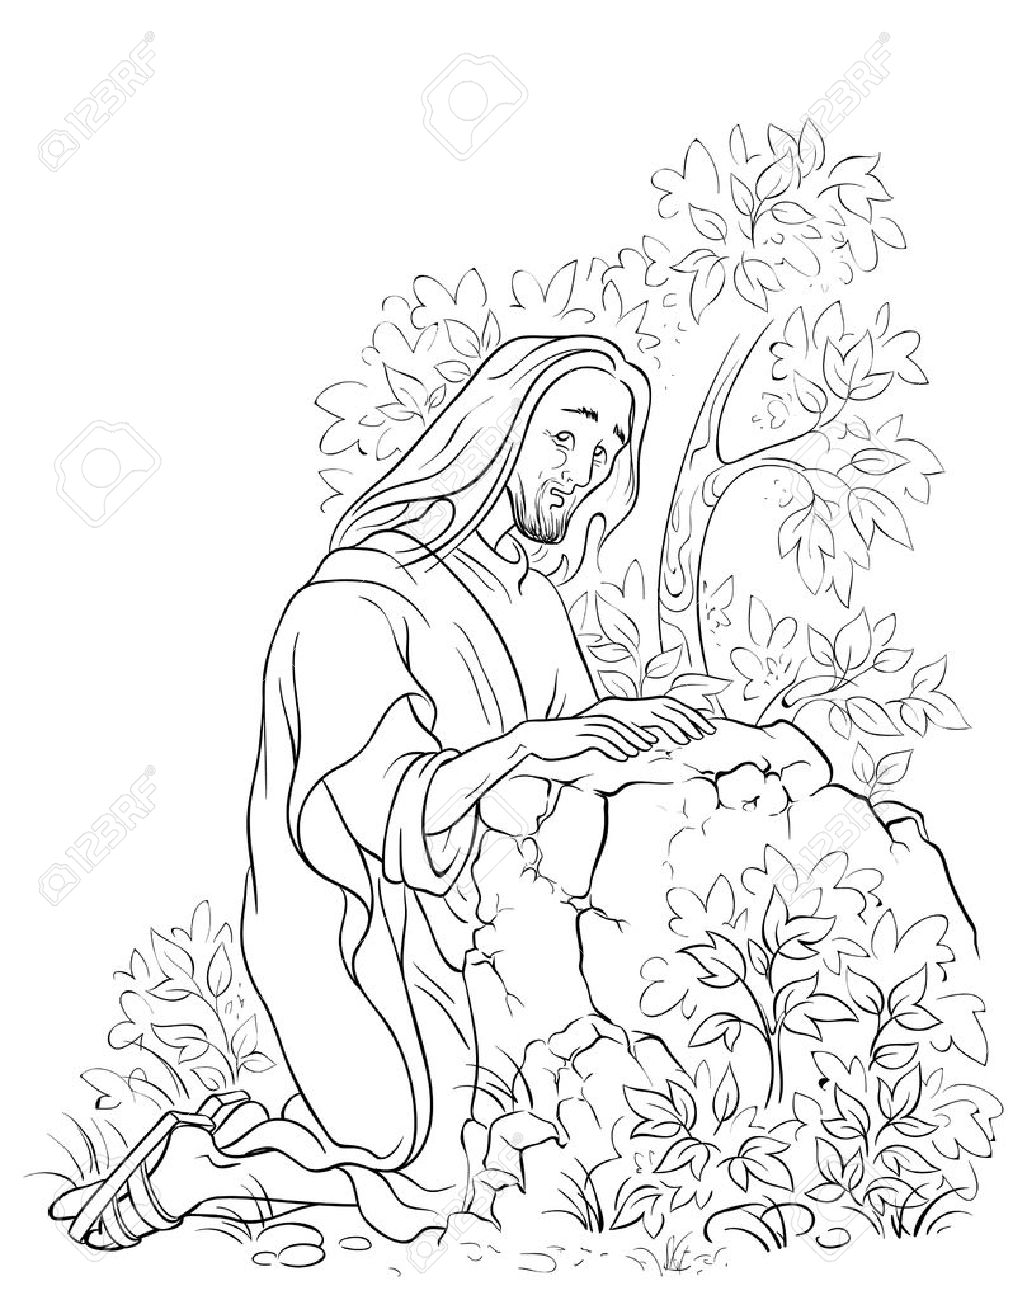 agony in the garden jesus in gethsemane scene coloring page stock vector 37675817 - Coloring Page Garden Of Gethsemane